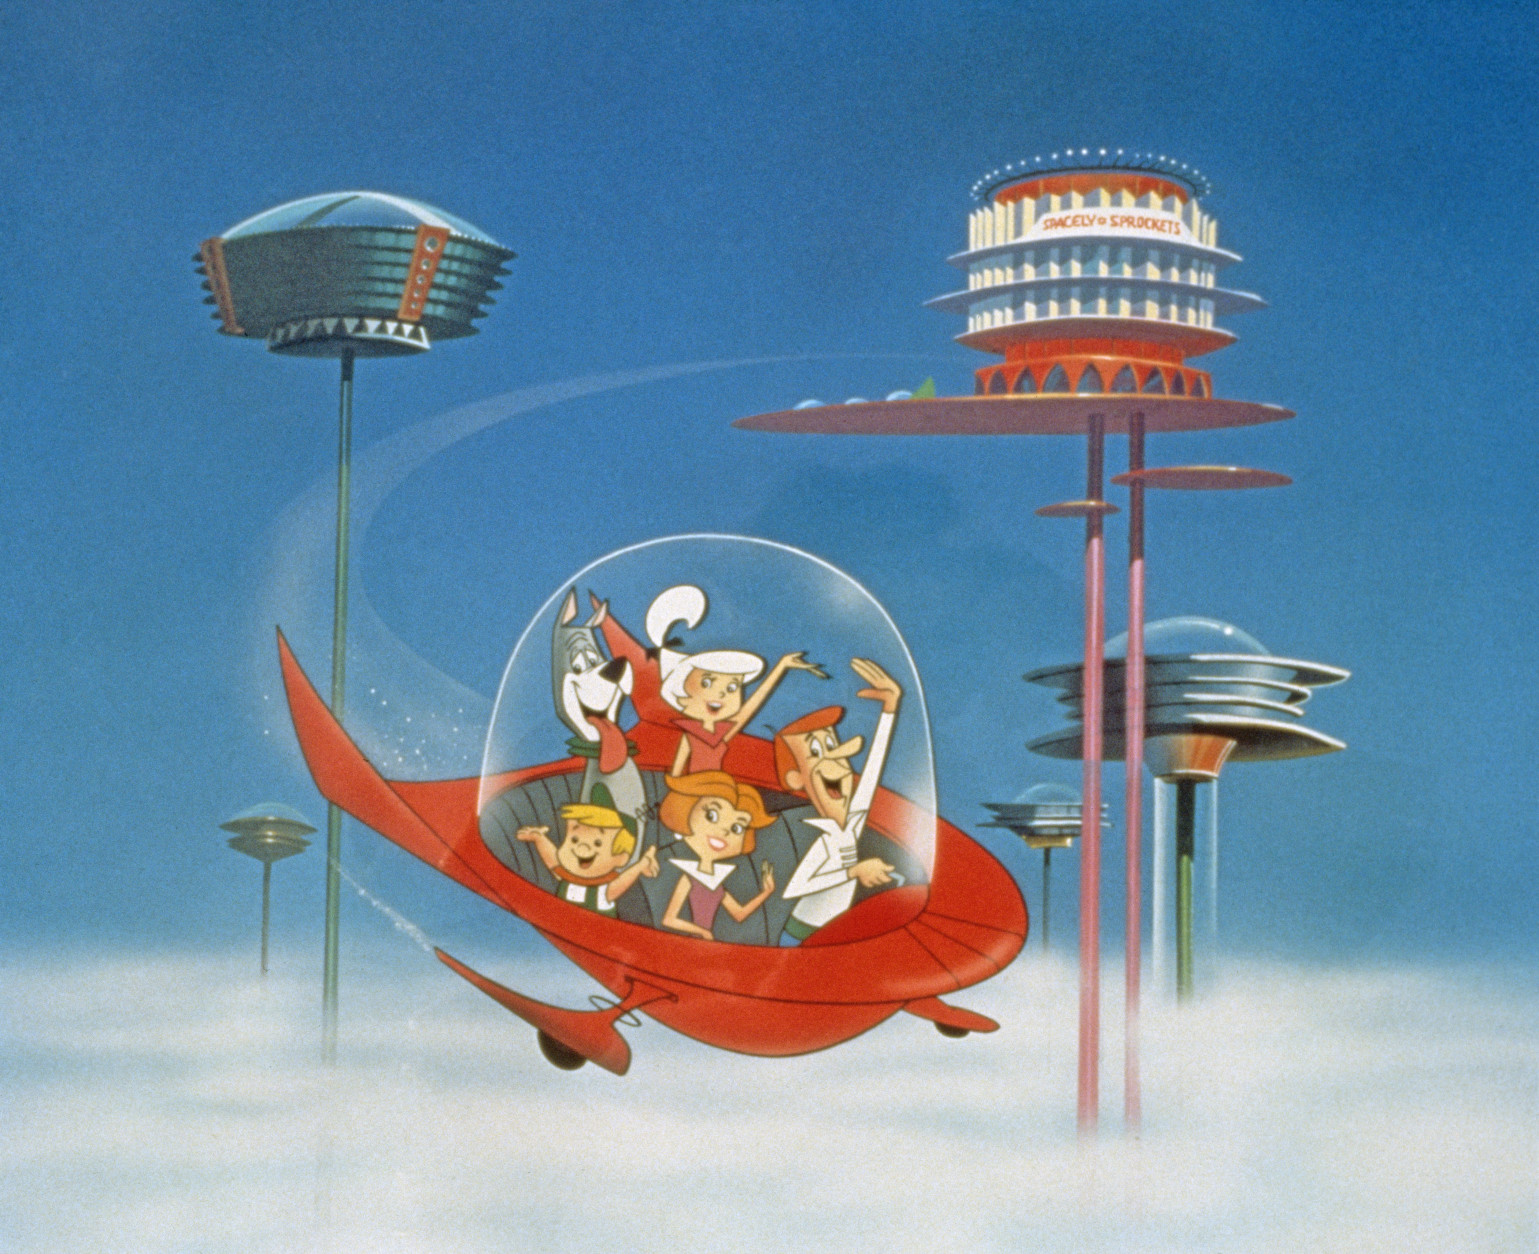 The concept of a flying car has been popular for decades, since The Jetsons. (Photo by Warner Bros./Courtesy of Getty Images)